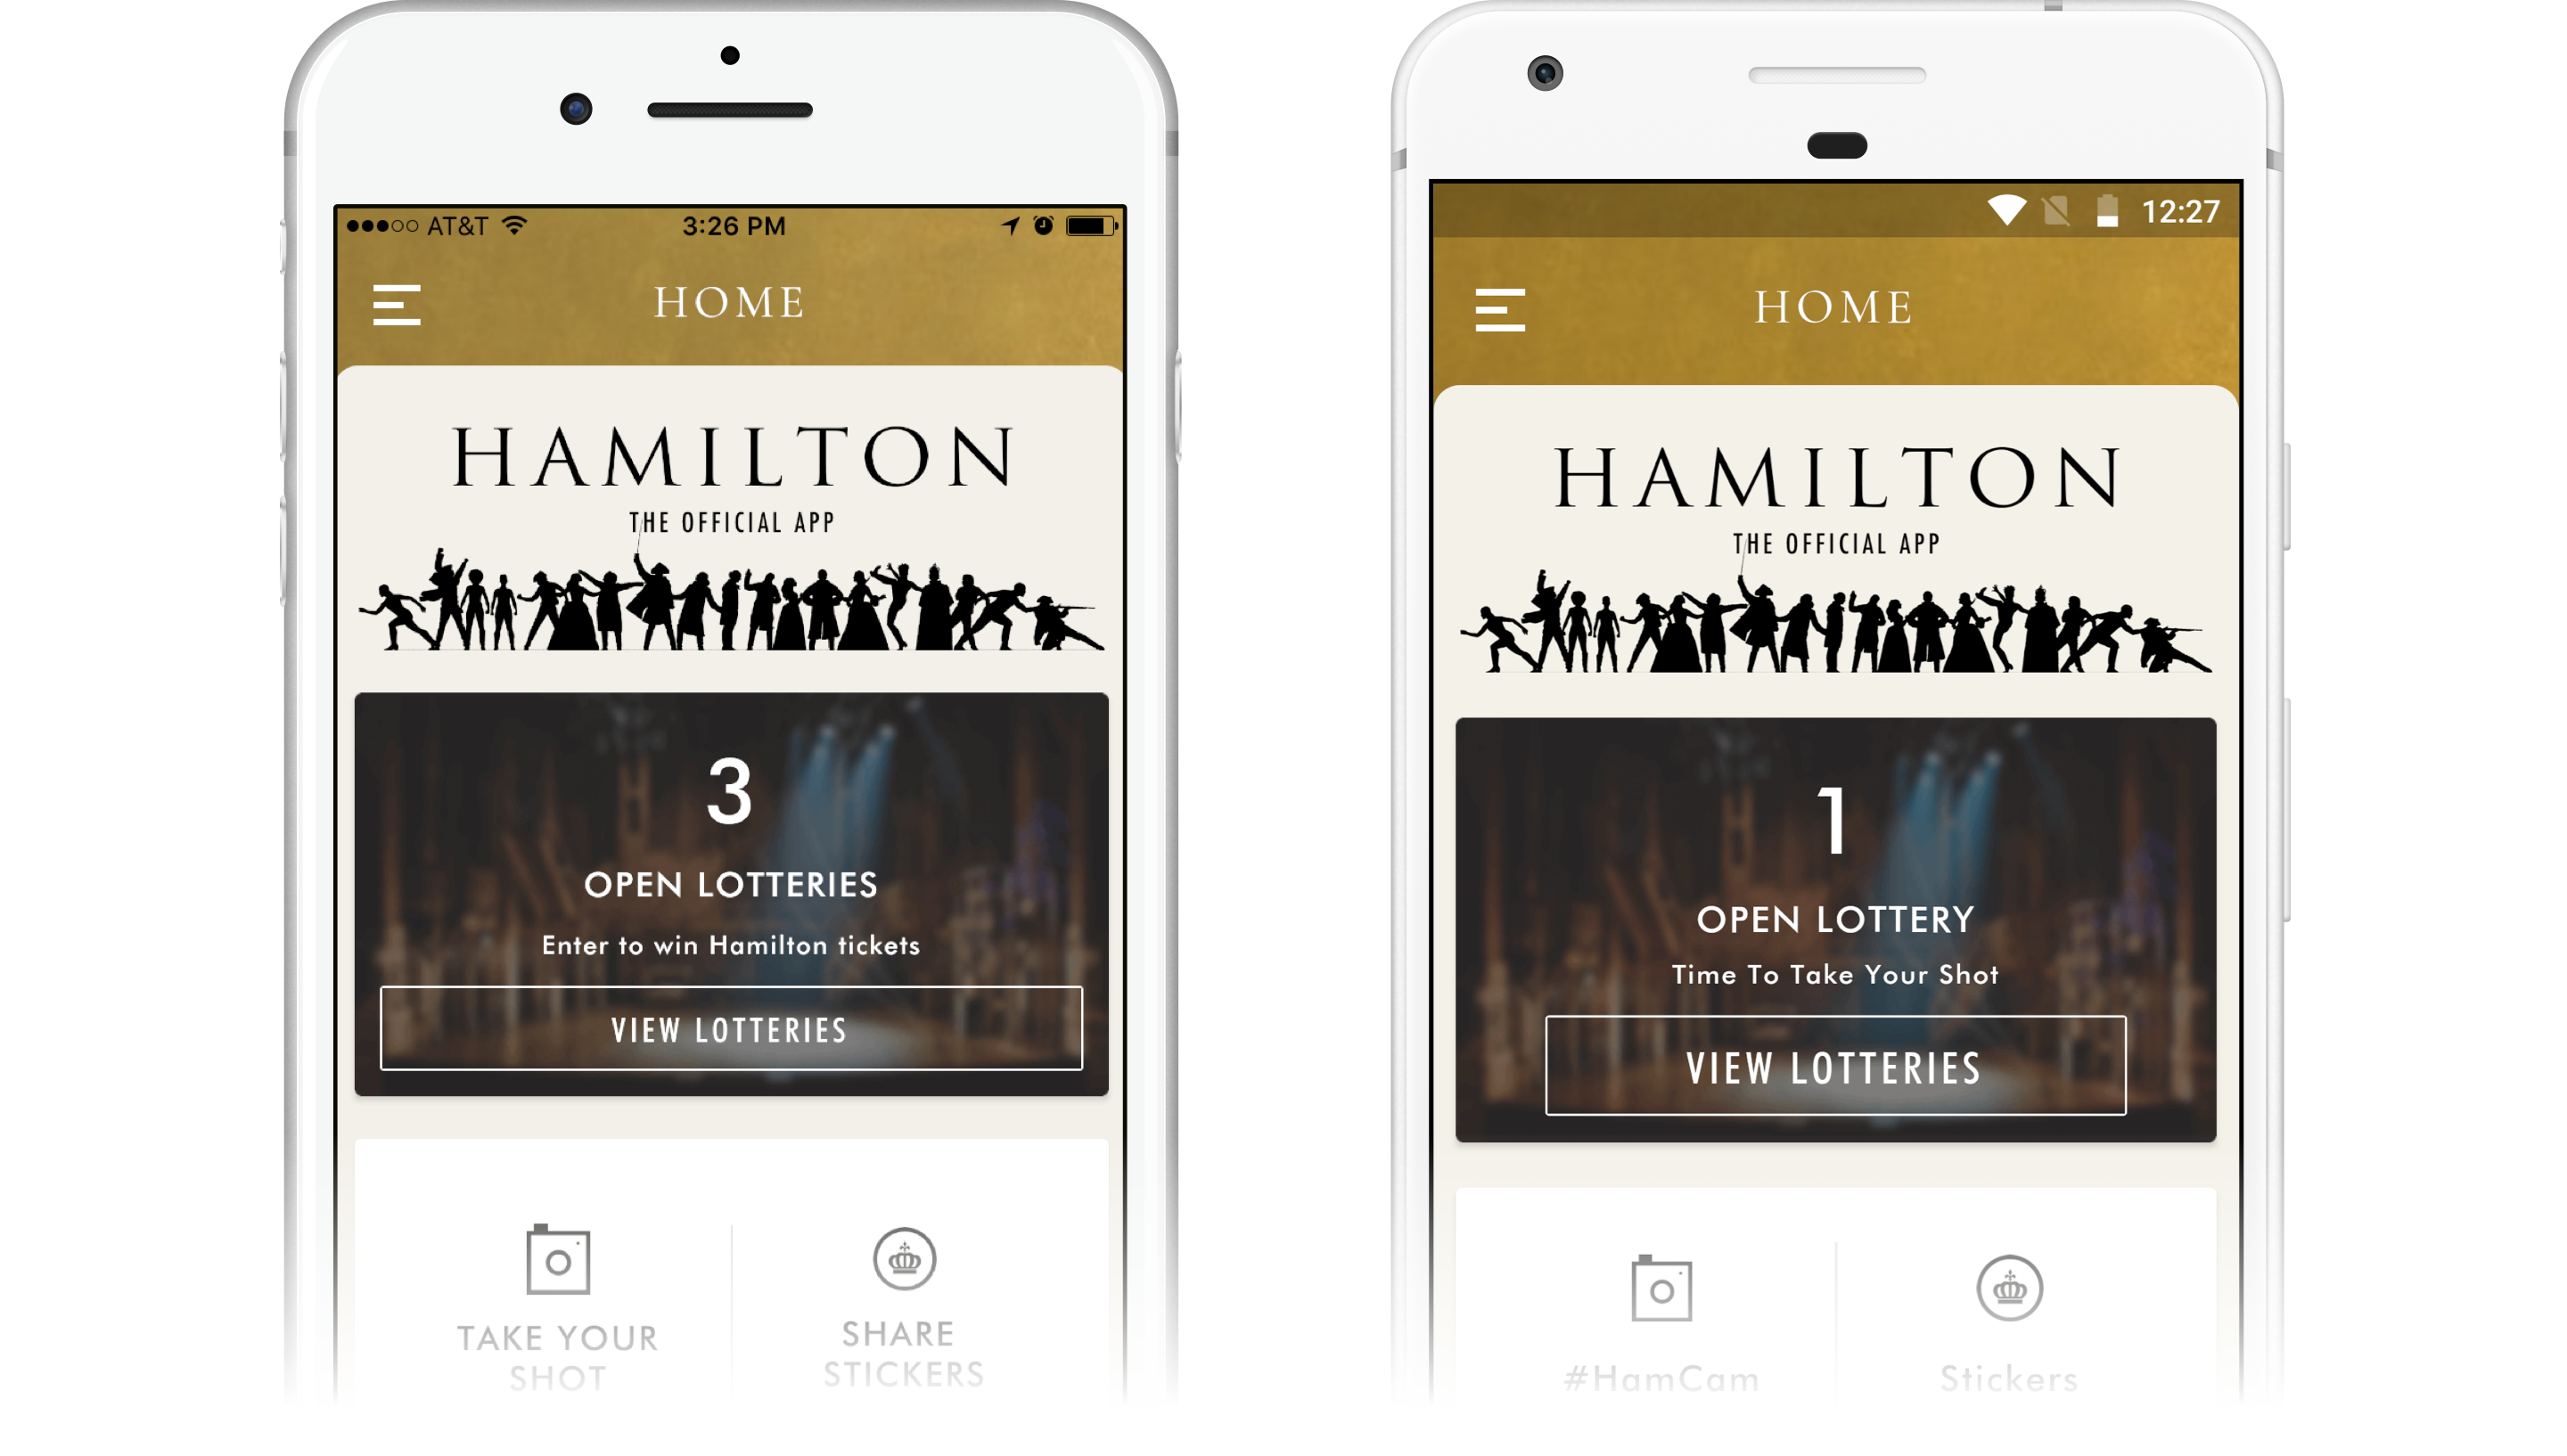 Rise Up! — The story of how the Hamilton App uses Flutter to